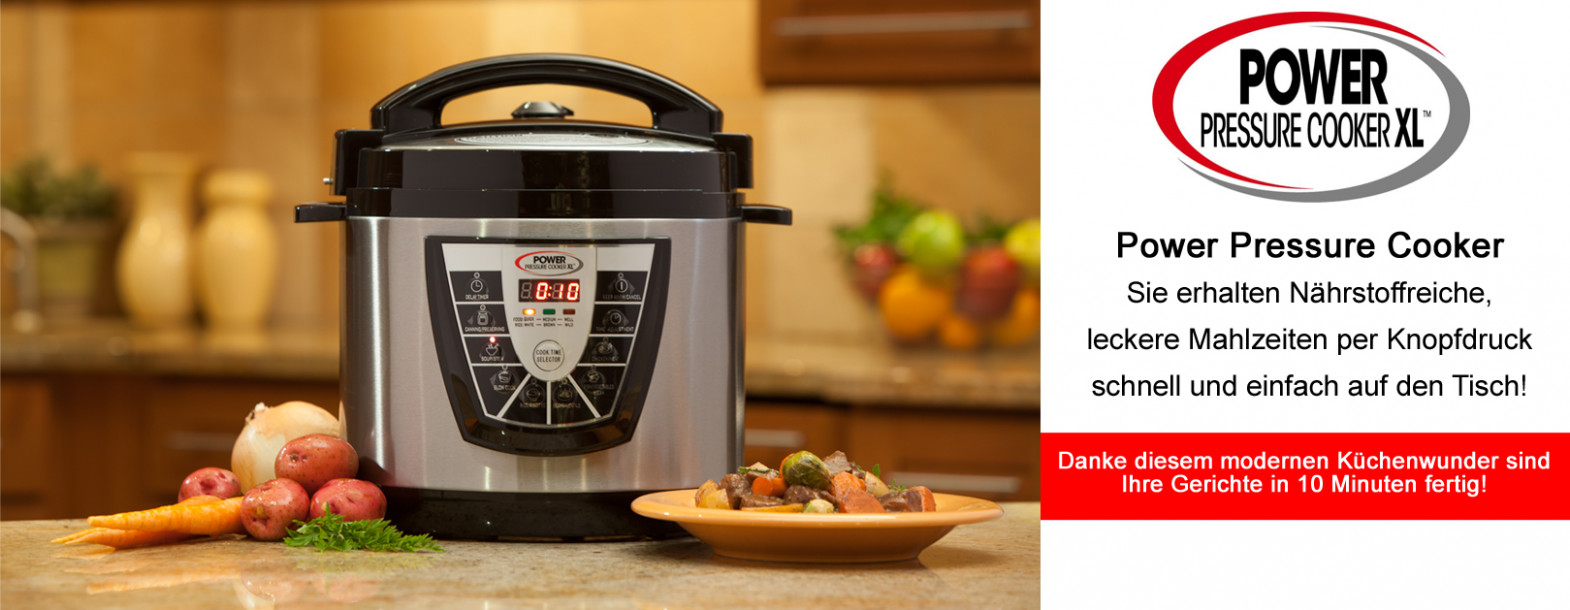 Power Pressure Cooker XL 13,13 Liter | NIKKO TV - Power Pressure Cooker Xl Chicken Recipes